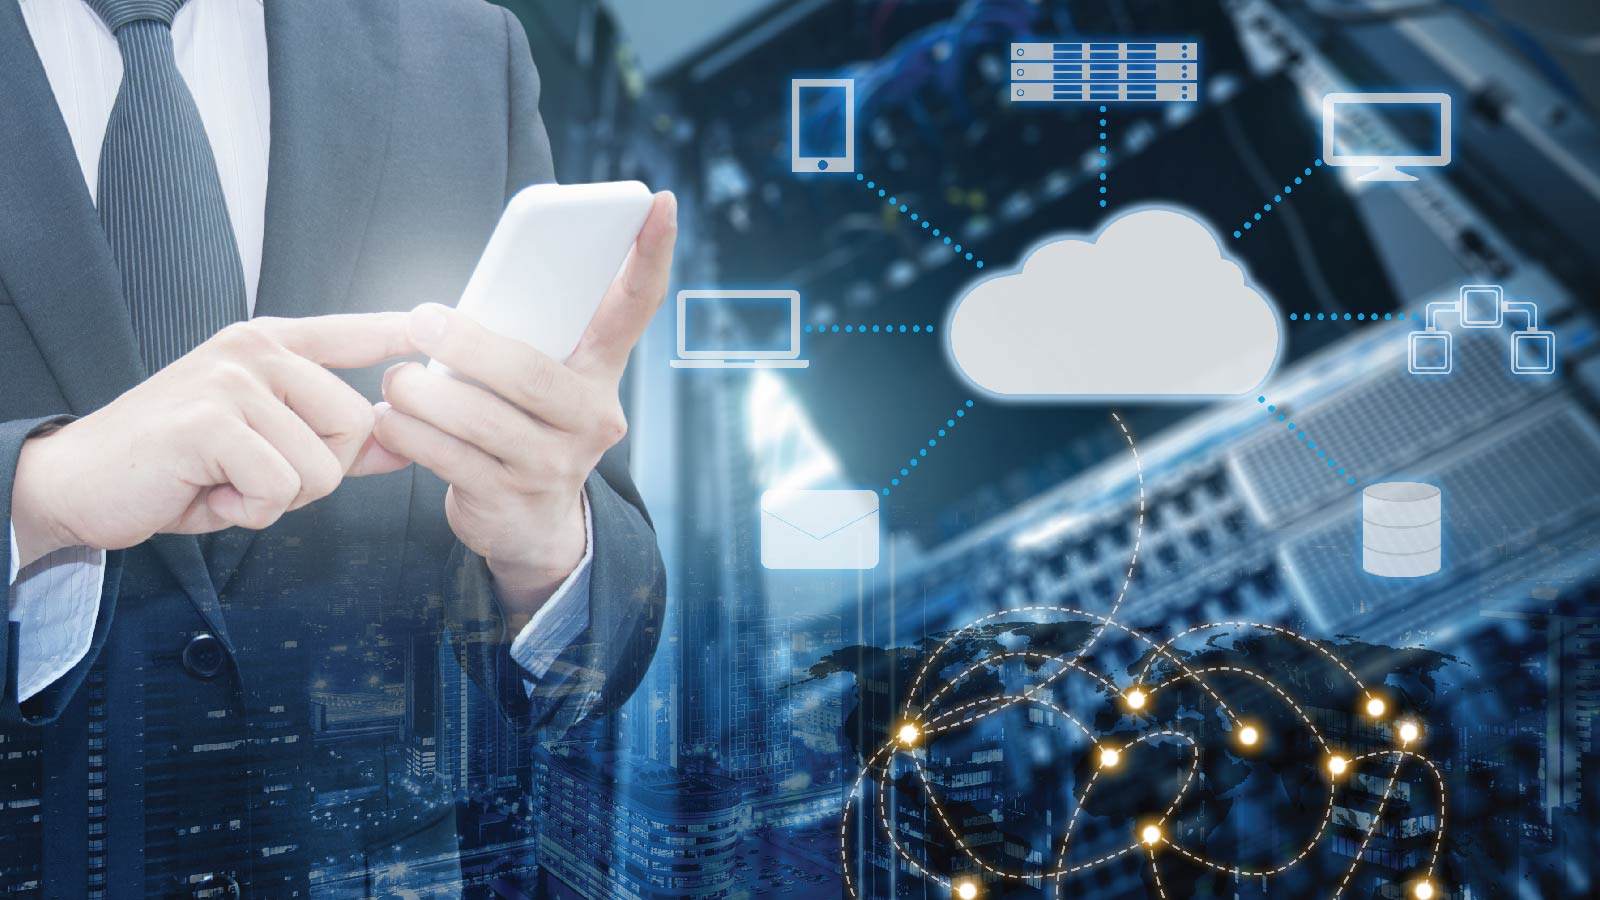 Organizations opt for Function-as-a-Service_ to measure cloud integrity